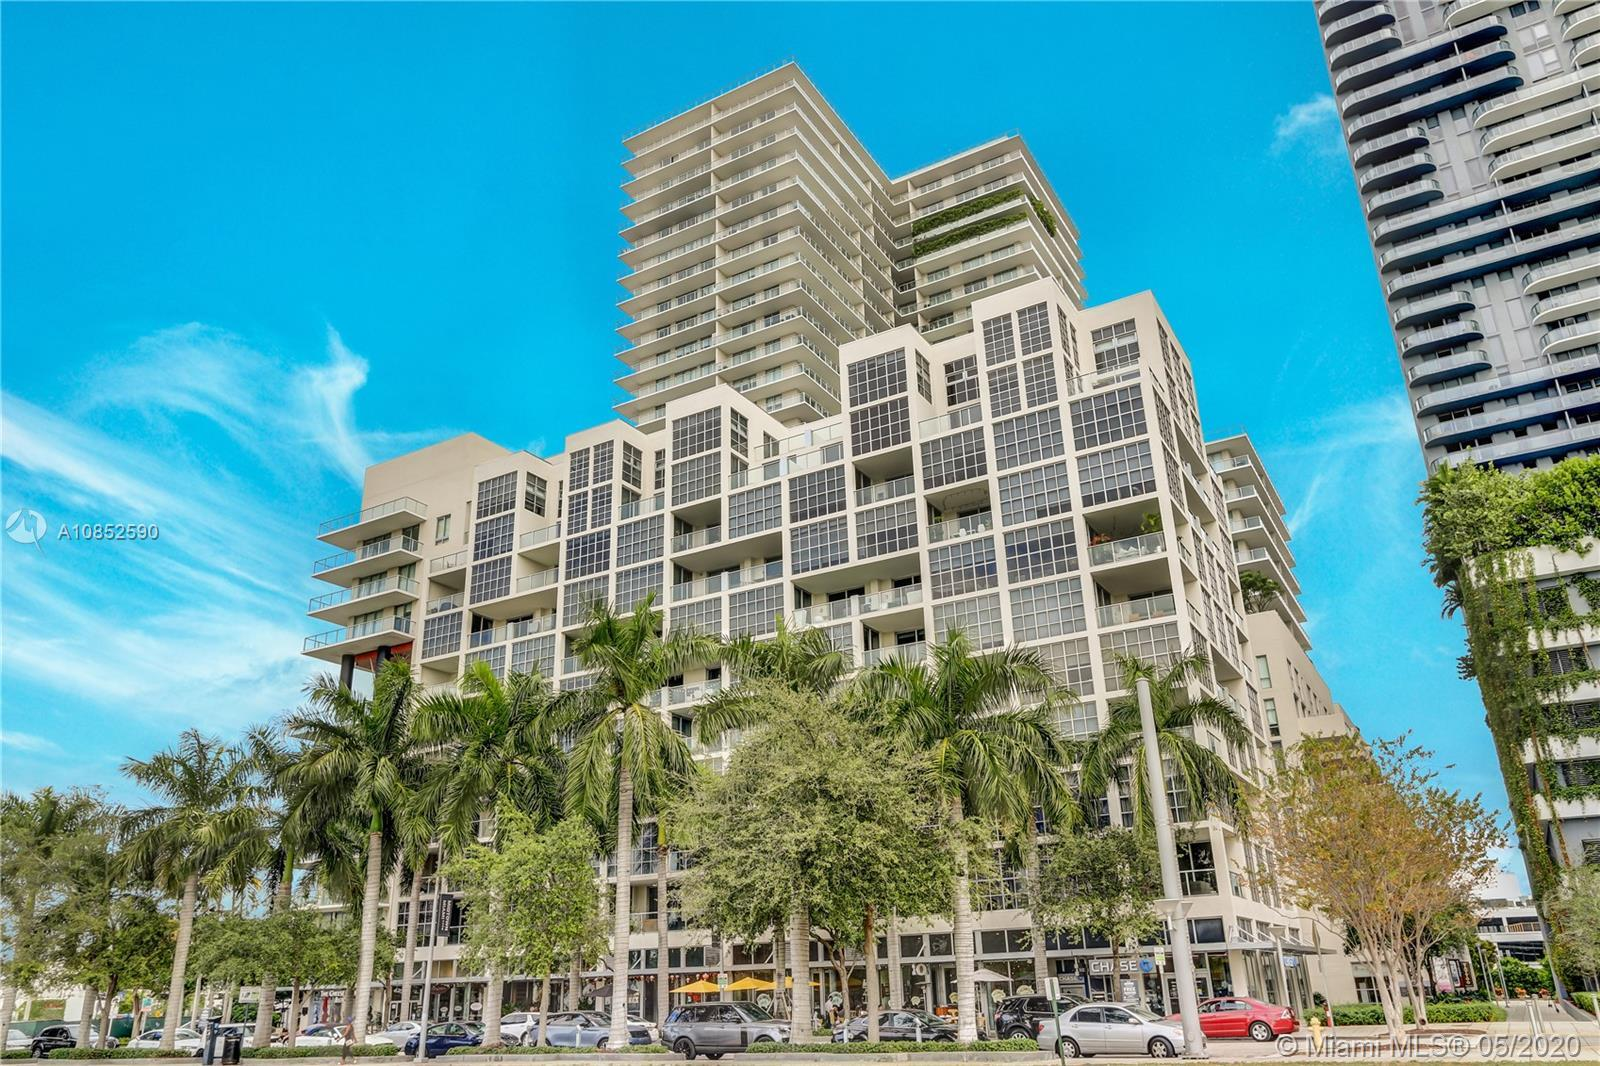 LIVE, WORK & PLAY in Midtown Miami! This 3 story townhouse-style condo features a ground floor Stree